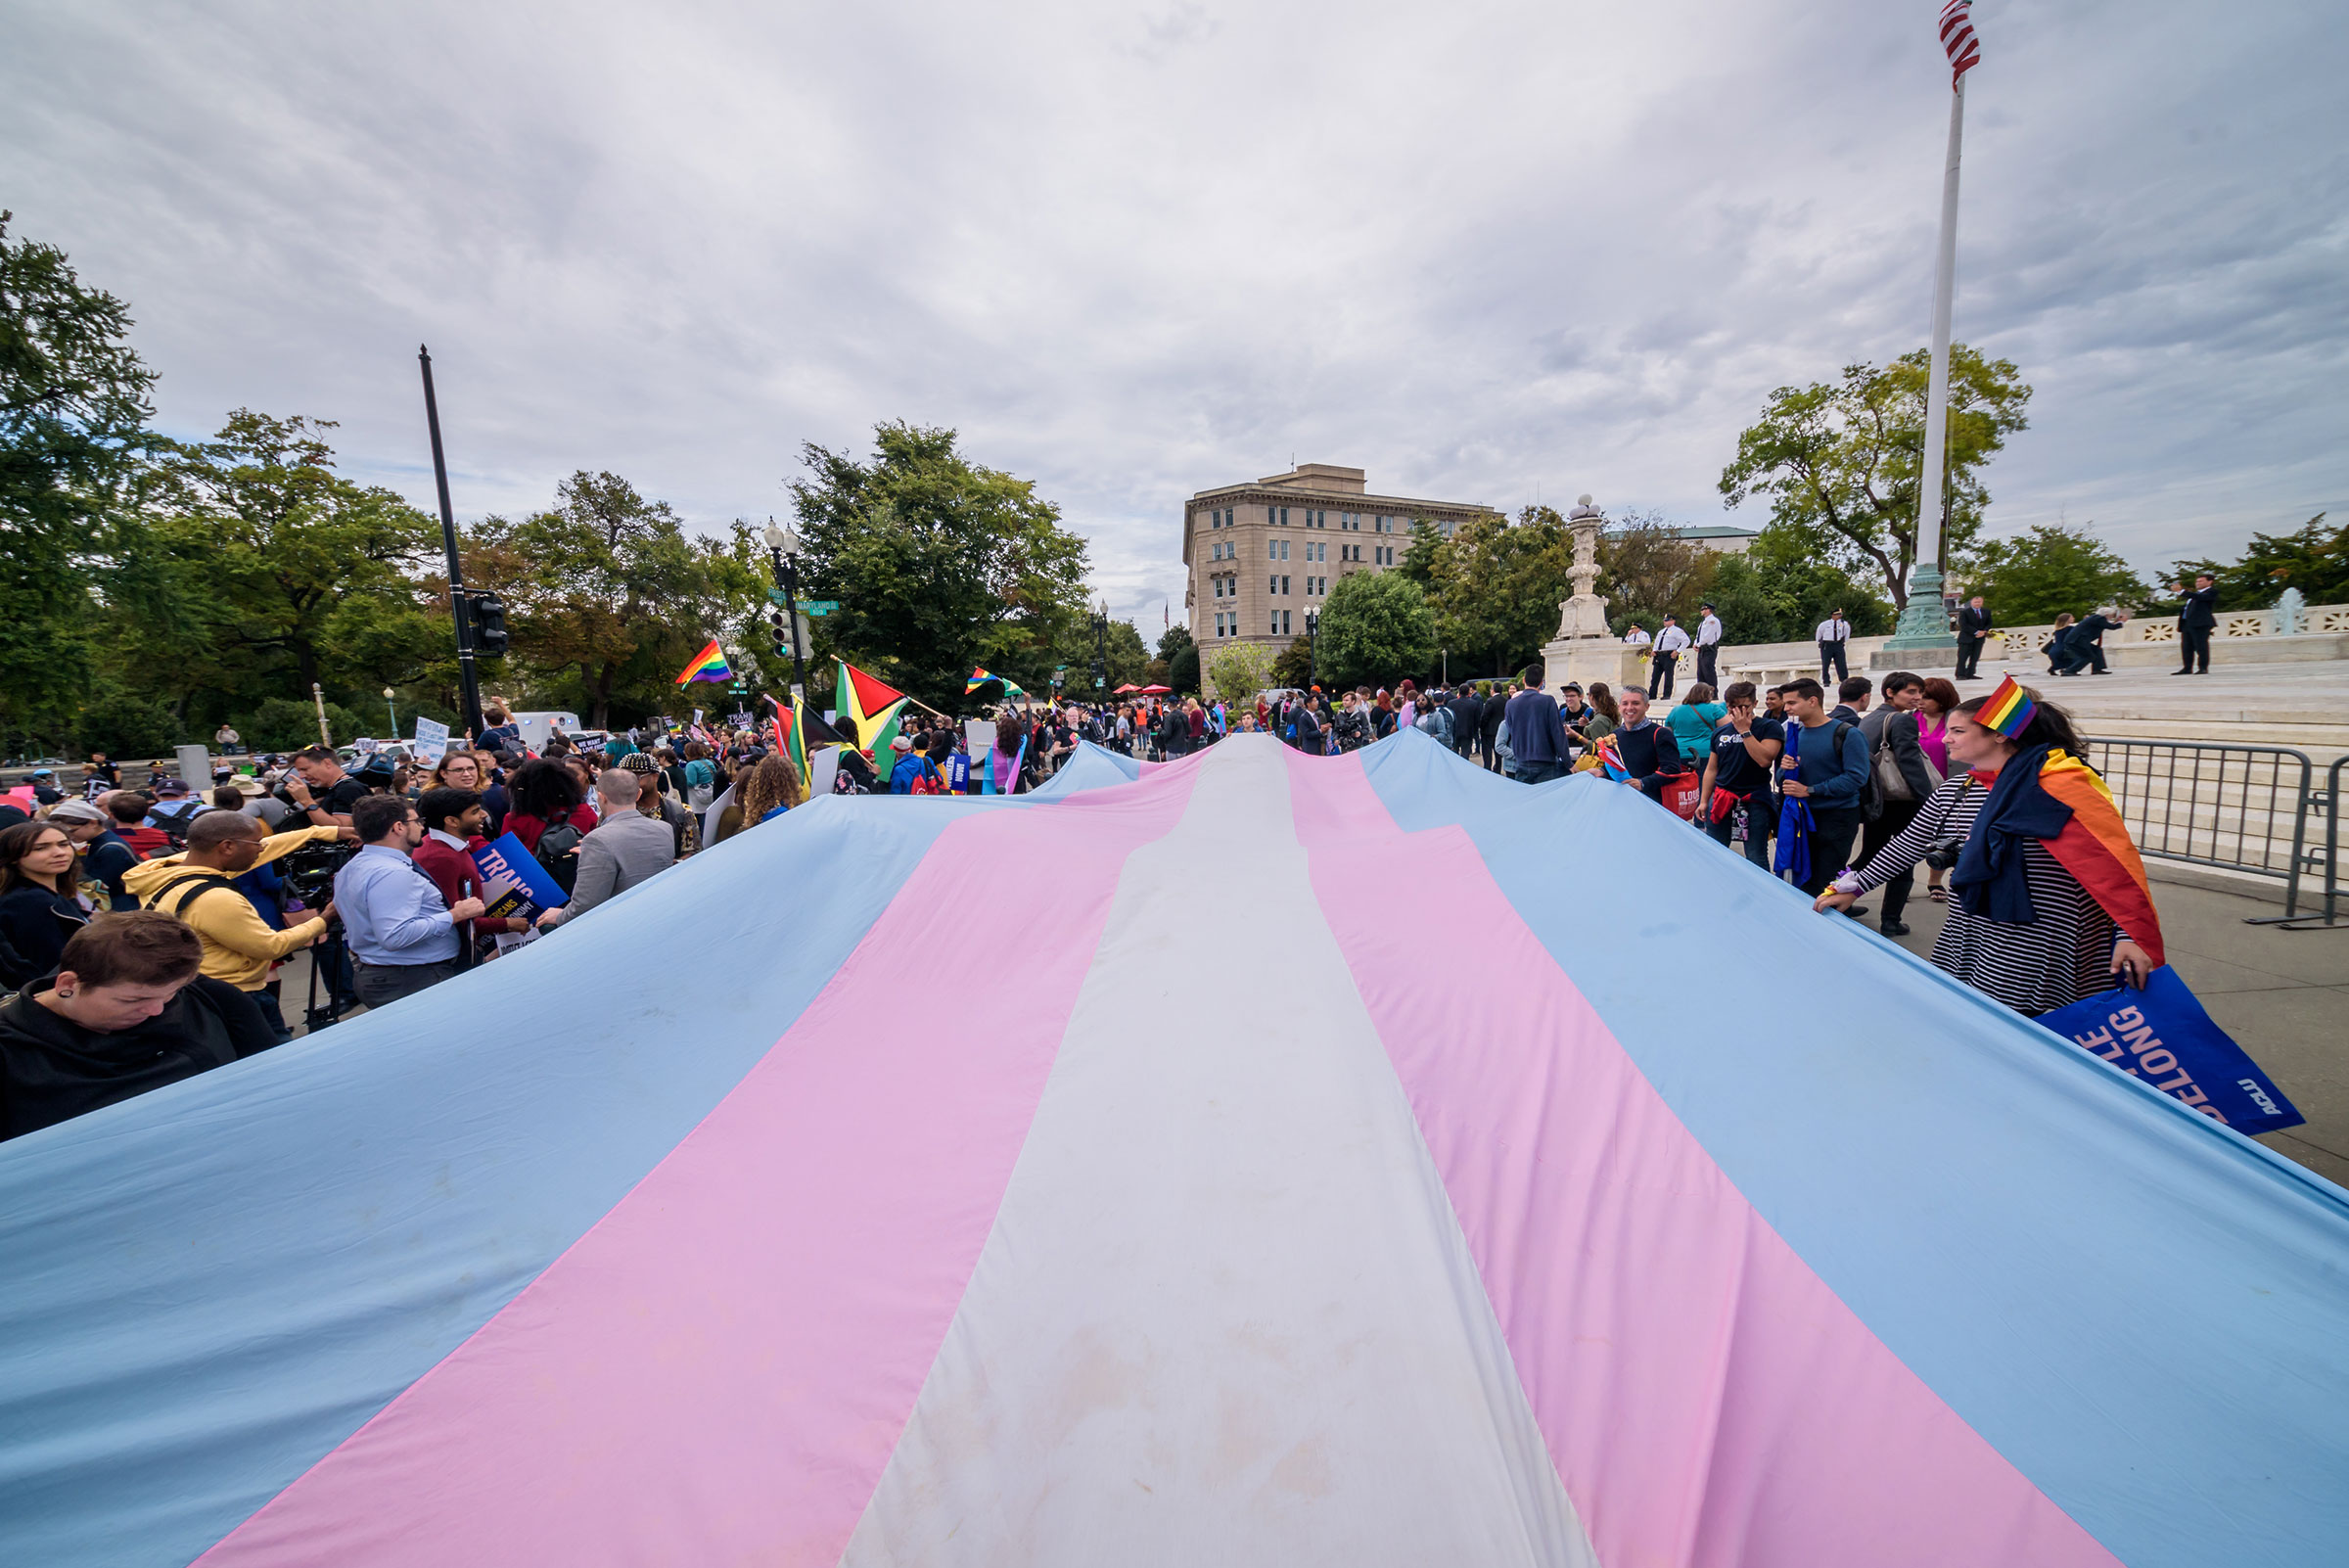 A large Trans Pride flag unfurled outside the Supreme Court in Washington on Oct. 8, 2019.